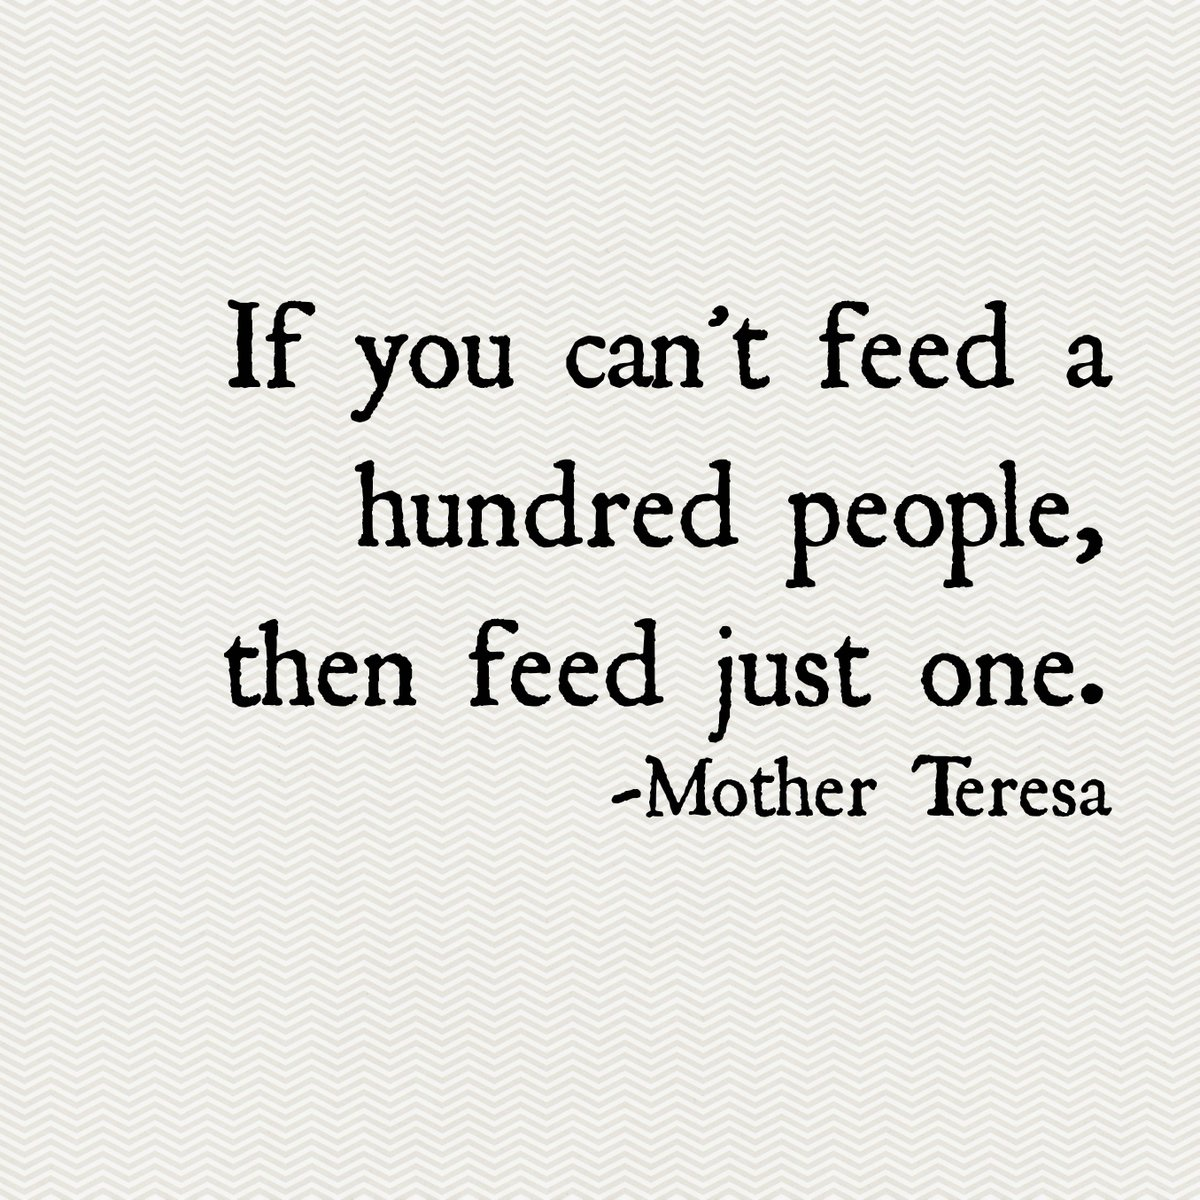 """Motivational Monday! """"If you can't feed a hundred people, then feed just one."""" Mother Teresa #giveback https://t.co/dmcgxHEd45"""